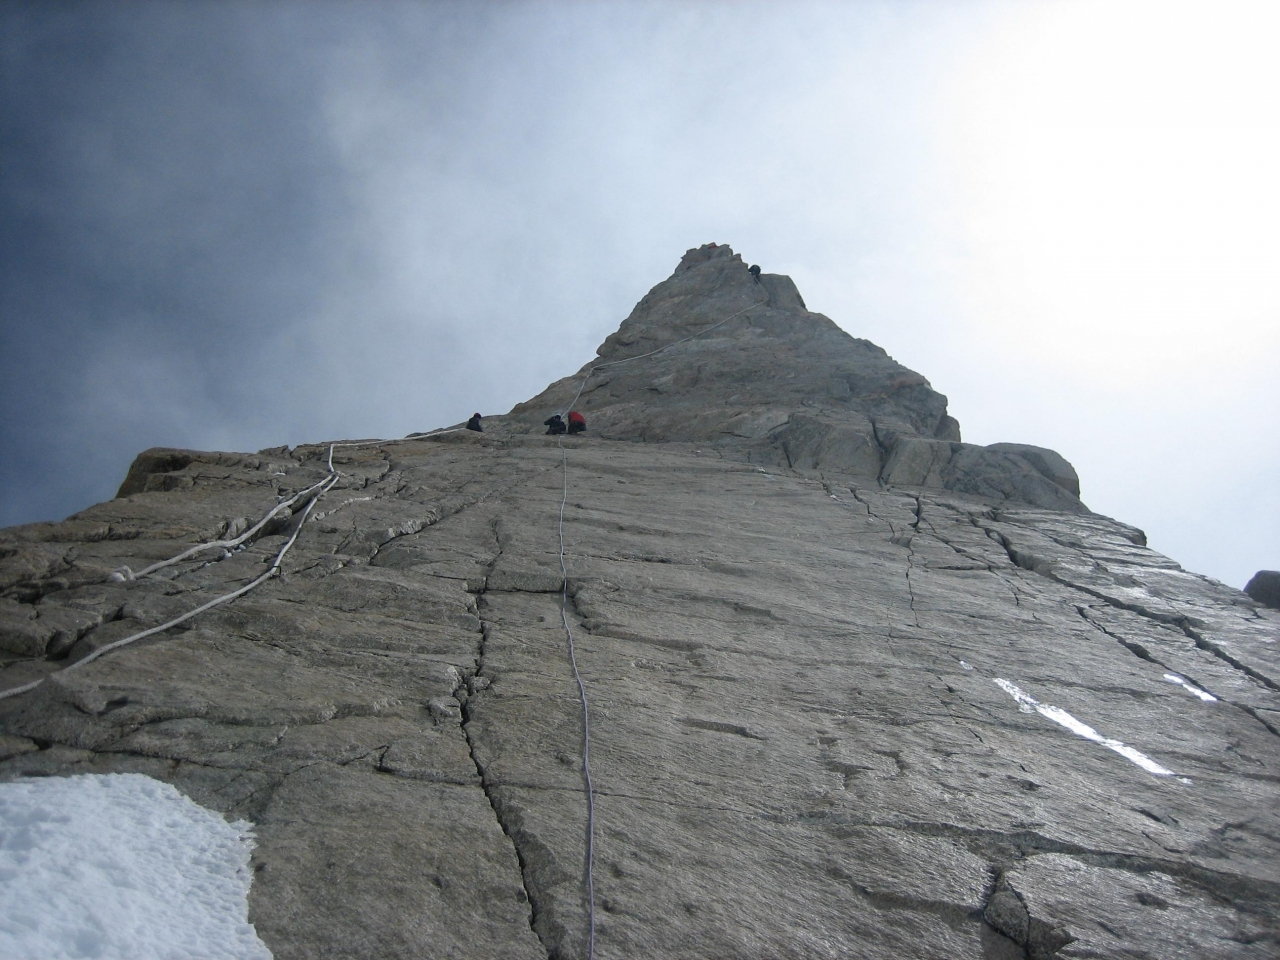 A picture from Dent du Géant / Dente del Gigante by Christian Fontaine